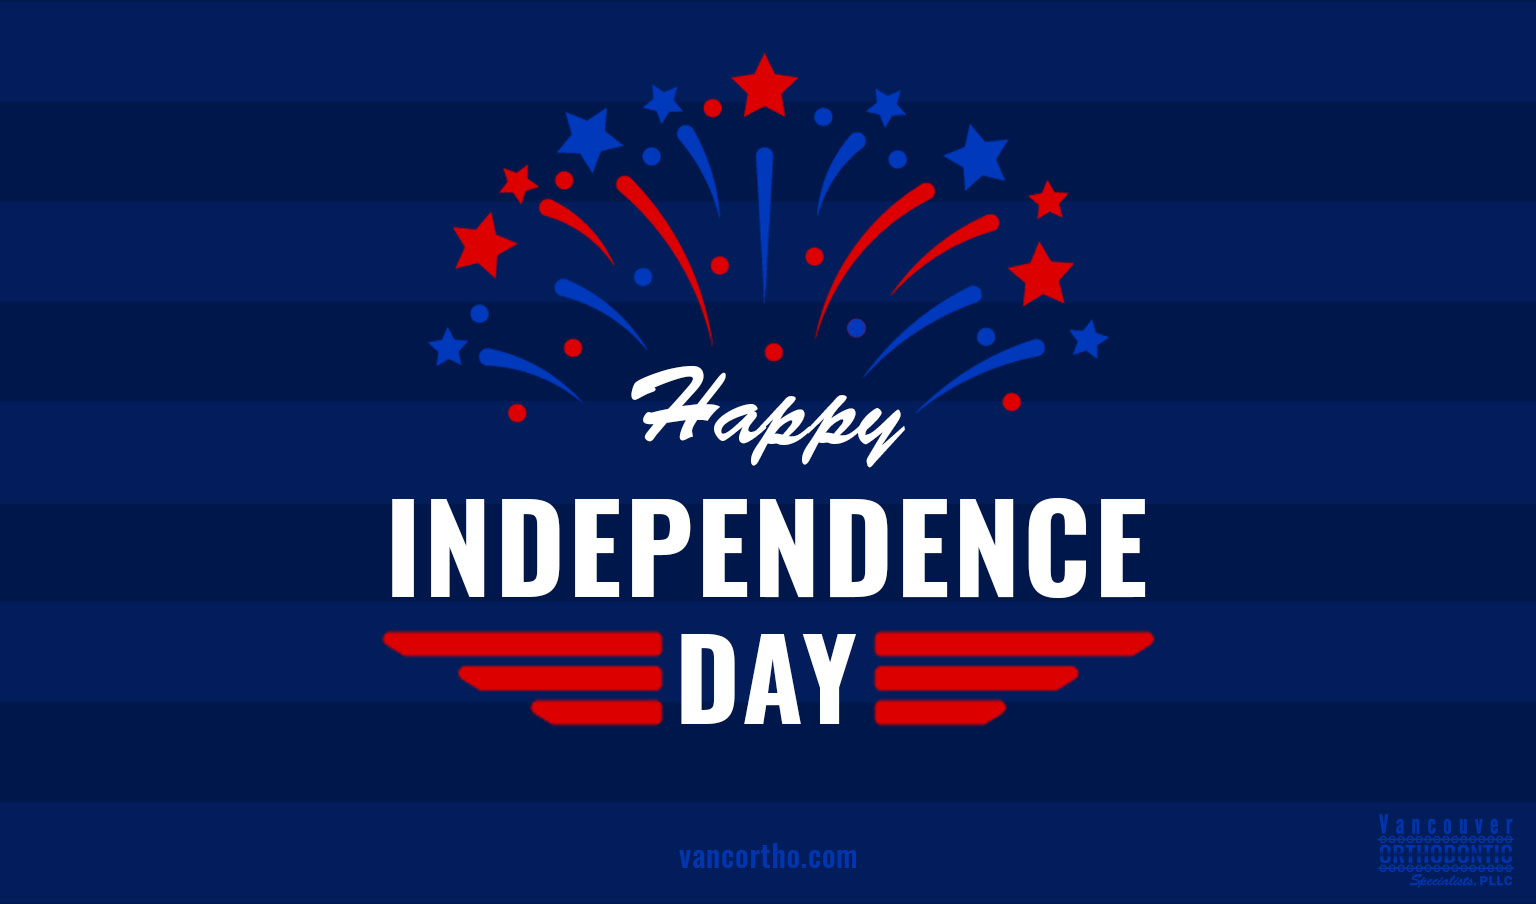 Happy Independence Day on dark blue striped background with red and blue fireworks